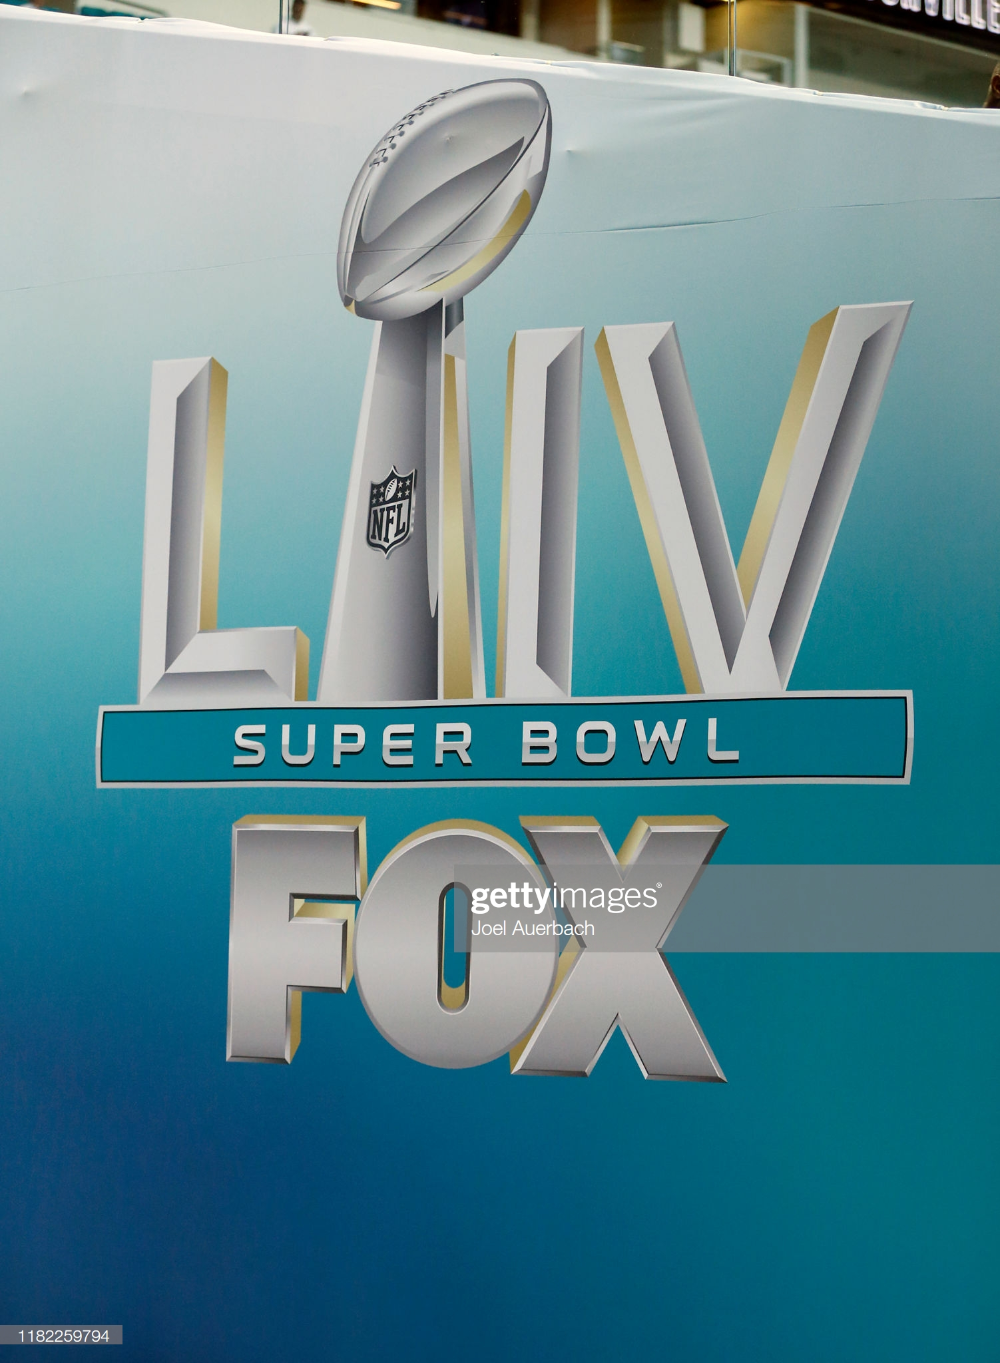 Fox Sports Set Up An Area At Hard Rock Stadium With Logos For Super Super Bowl Fox Sports Hard Rock